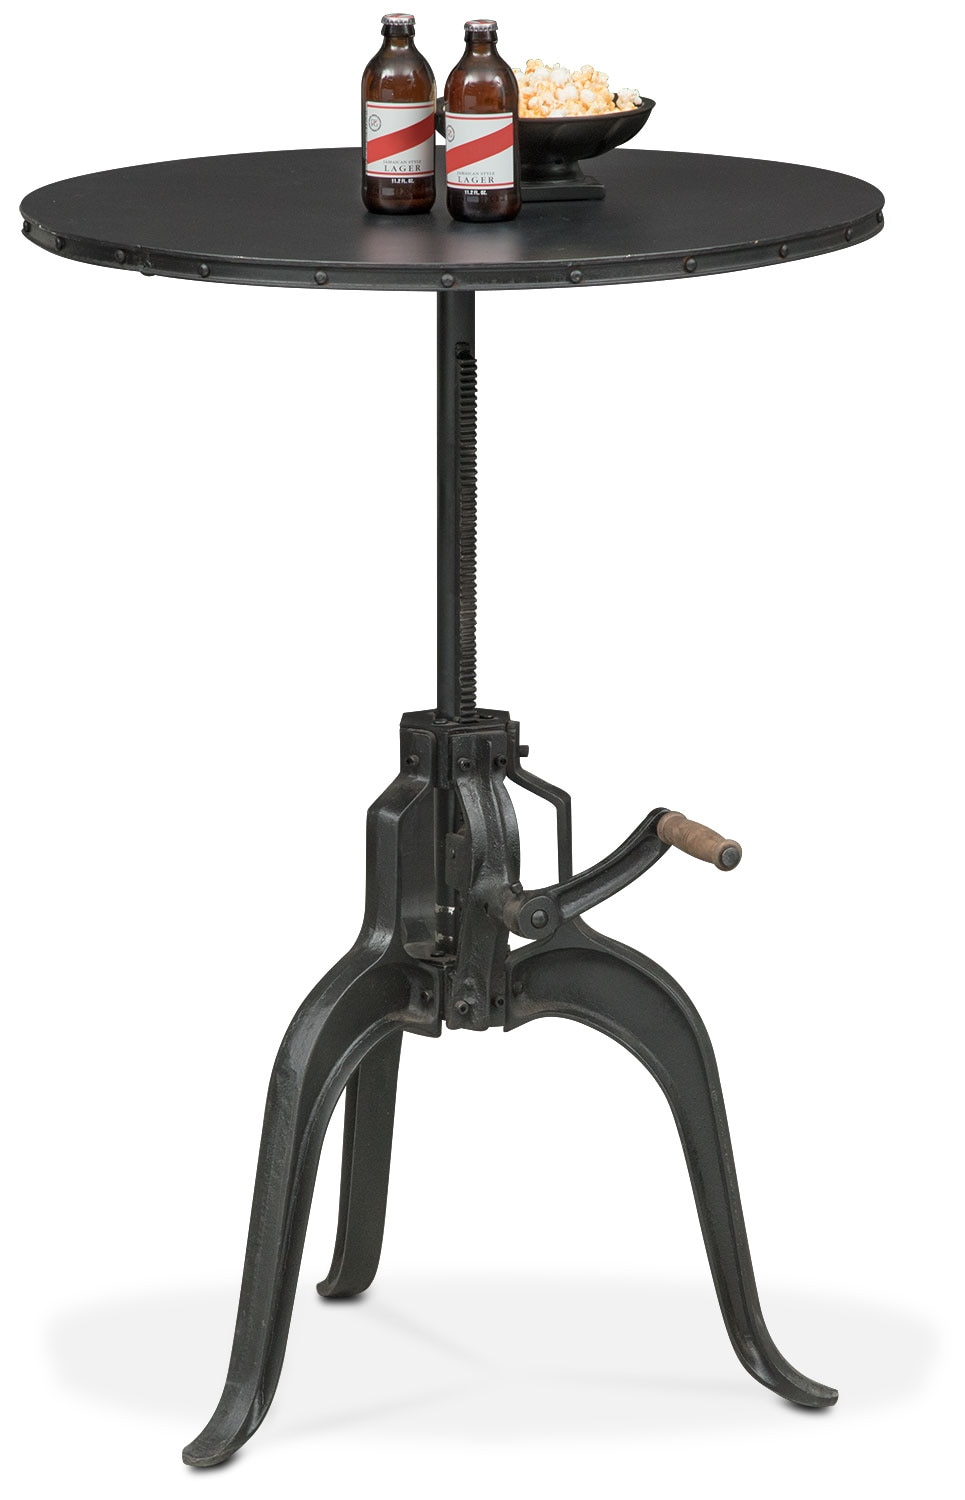 Derrik Adjustable Crank Table - Black